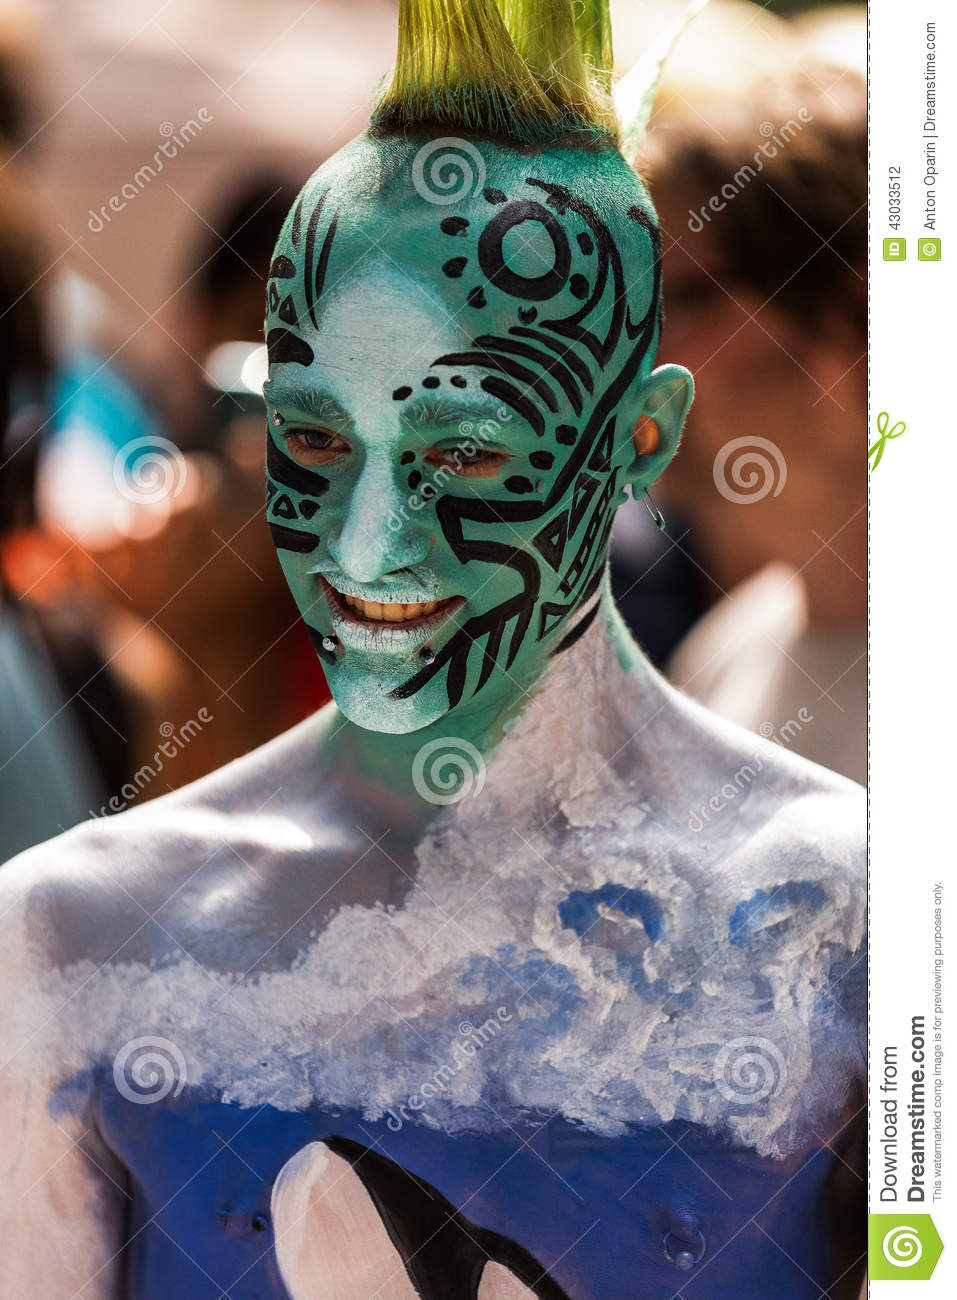 Naturist Body Painting : naturist, painting, Models,, Artists, Streets, During, First, Official, Painting, Event, Editorial, Photography, Image, America,, Naturist:, 43033512